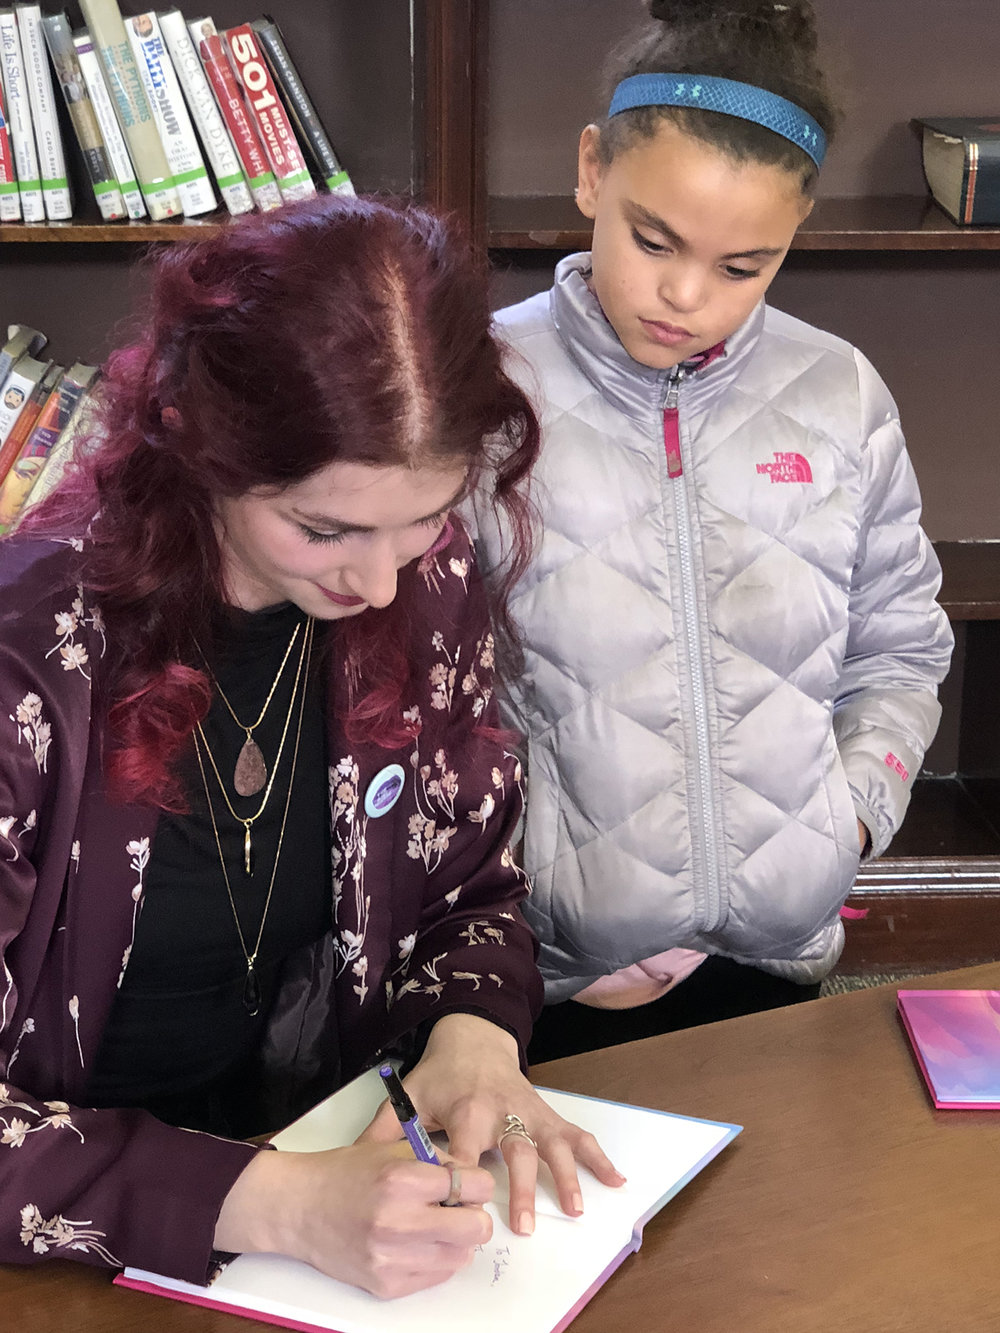 "Geena Matuson ""The Girl Mirage"" with a young fan at her book reading and signing for first book ""Dadalectic: Waking Dream"" at Medfield Memorial Public Library, March 2018. See more @ http://dadalectic.com."